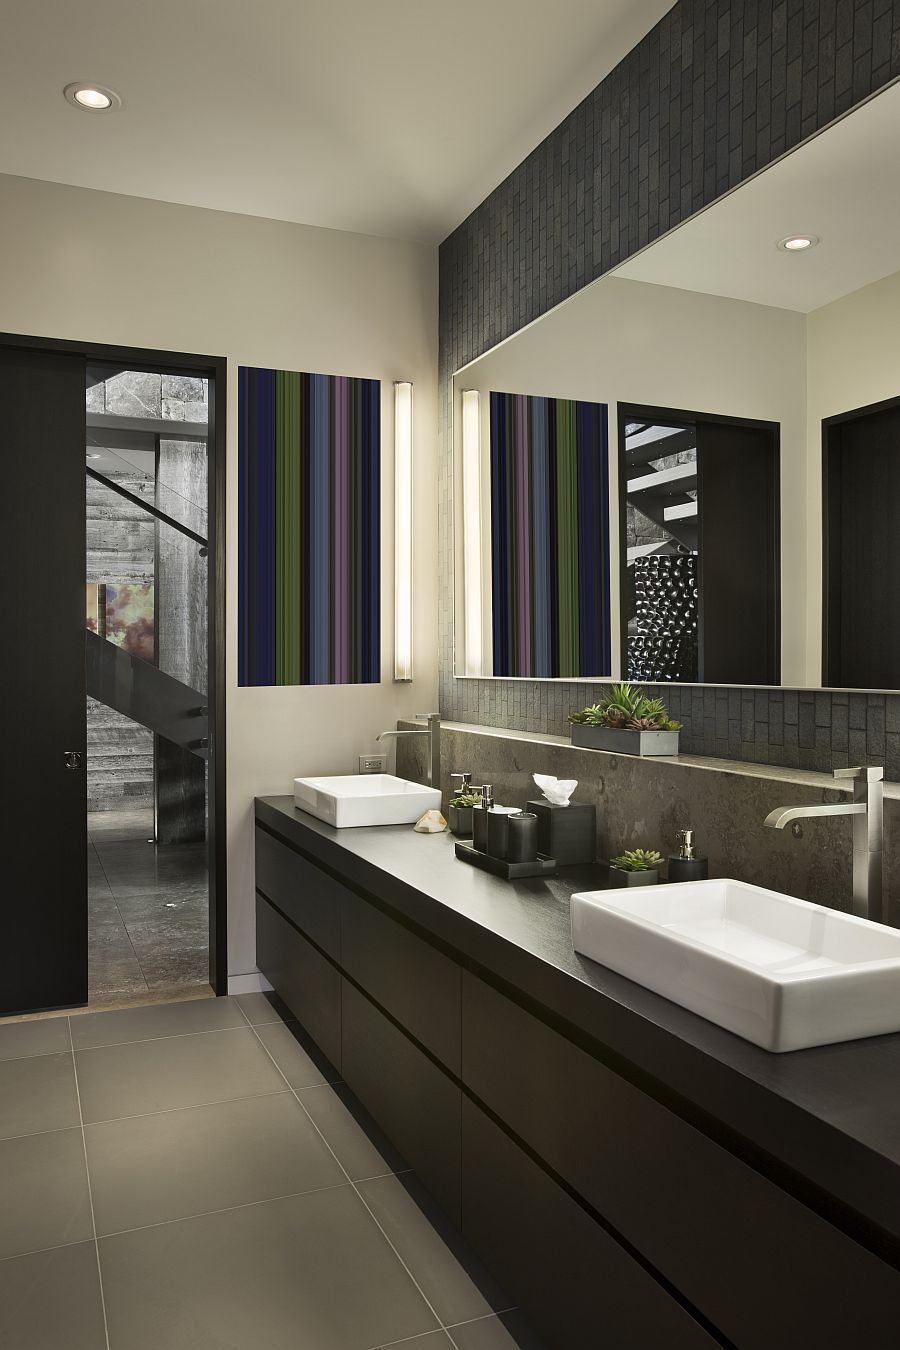 Private luxury ski resort in montana by len cotsovolos for Guest bathroom design